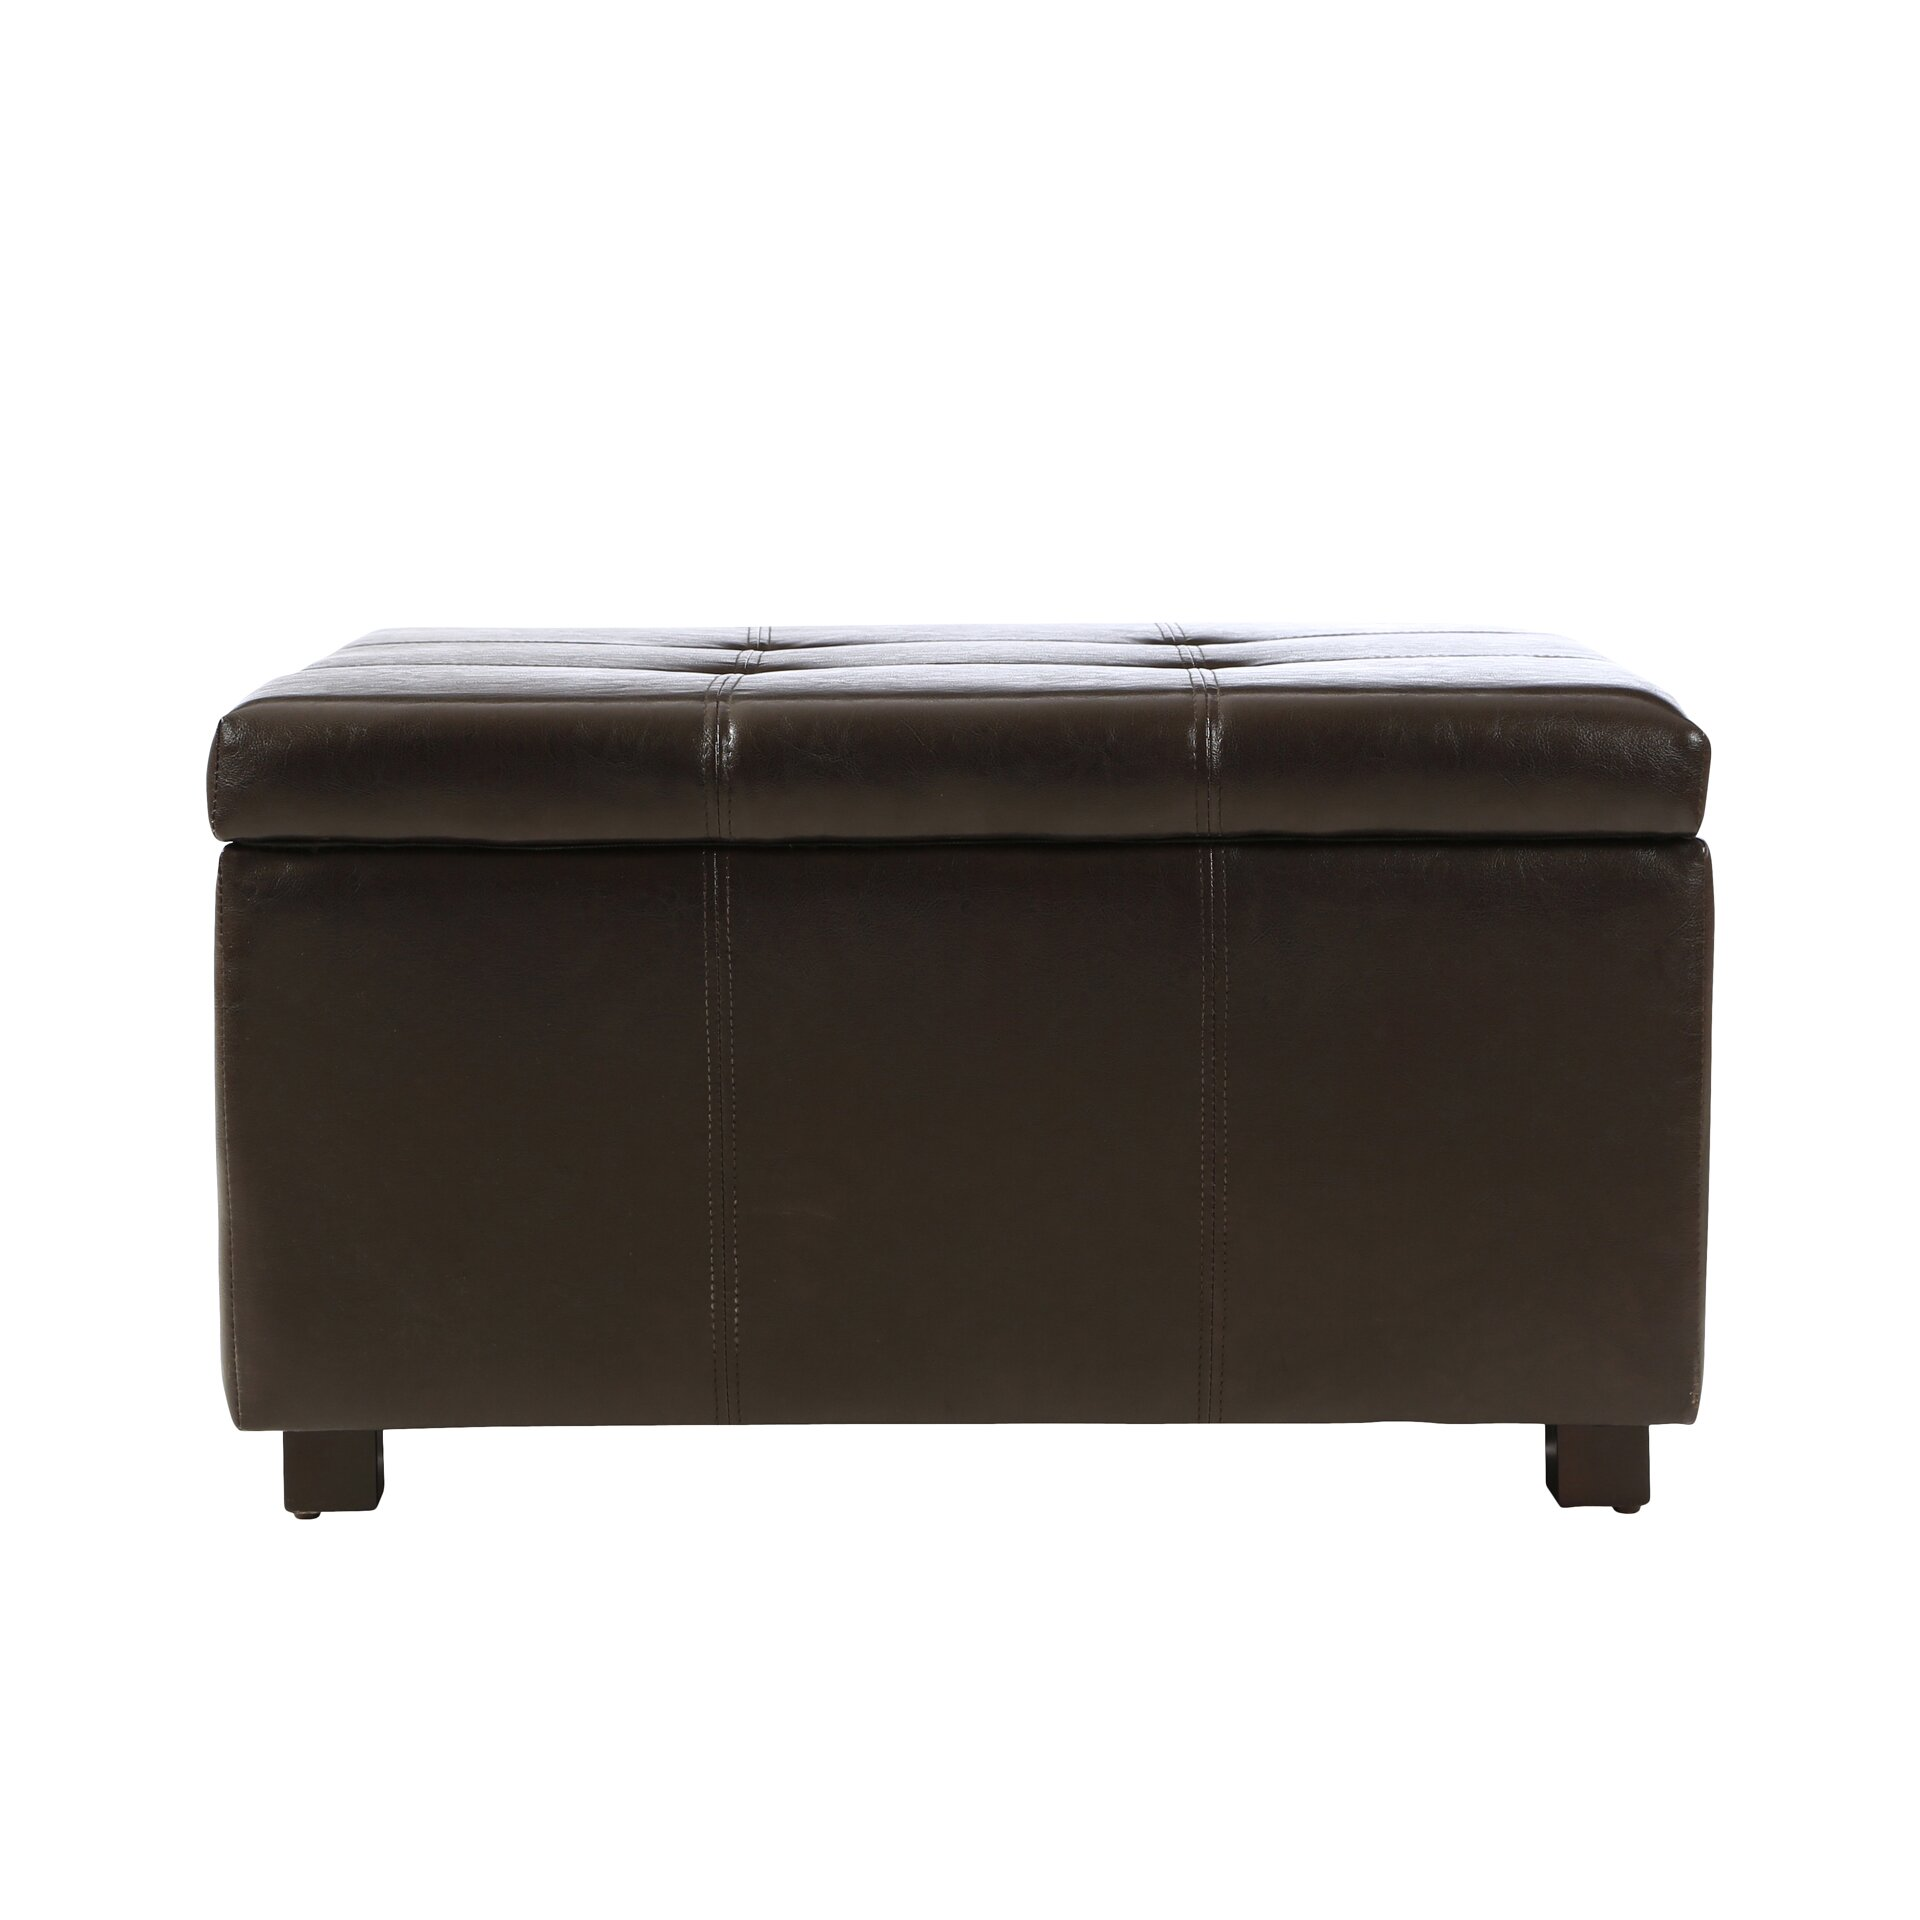 Three Posts Polycarp Storage Ottoman Reviews: Three Posts Ehlert Storage Leather Ottoman & Reviews